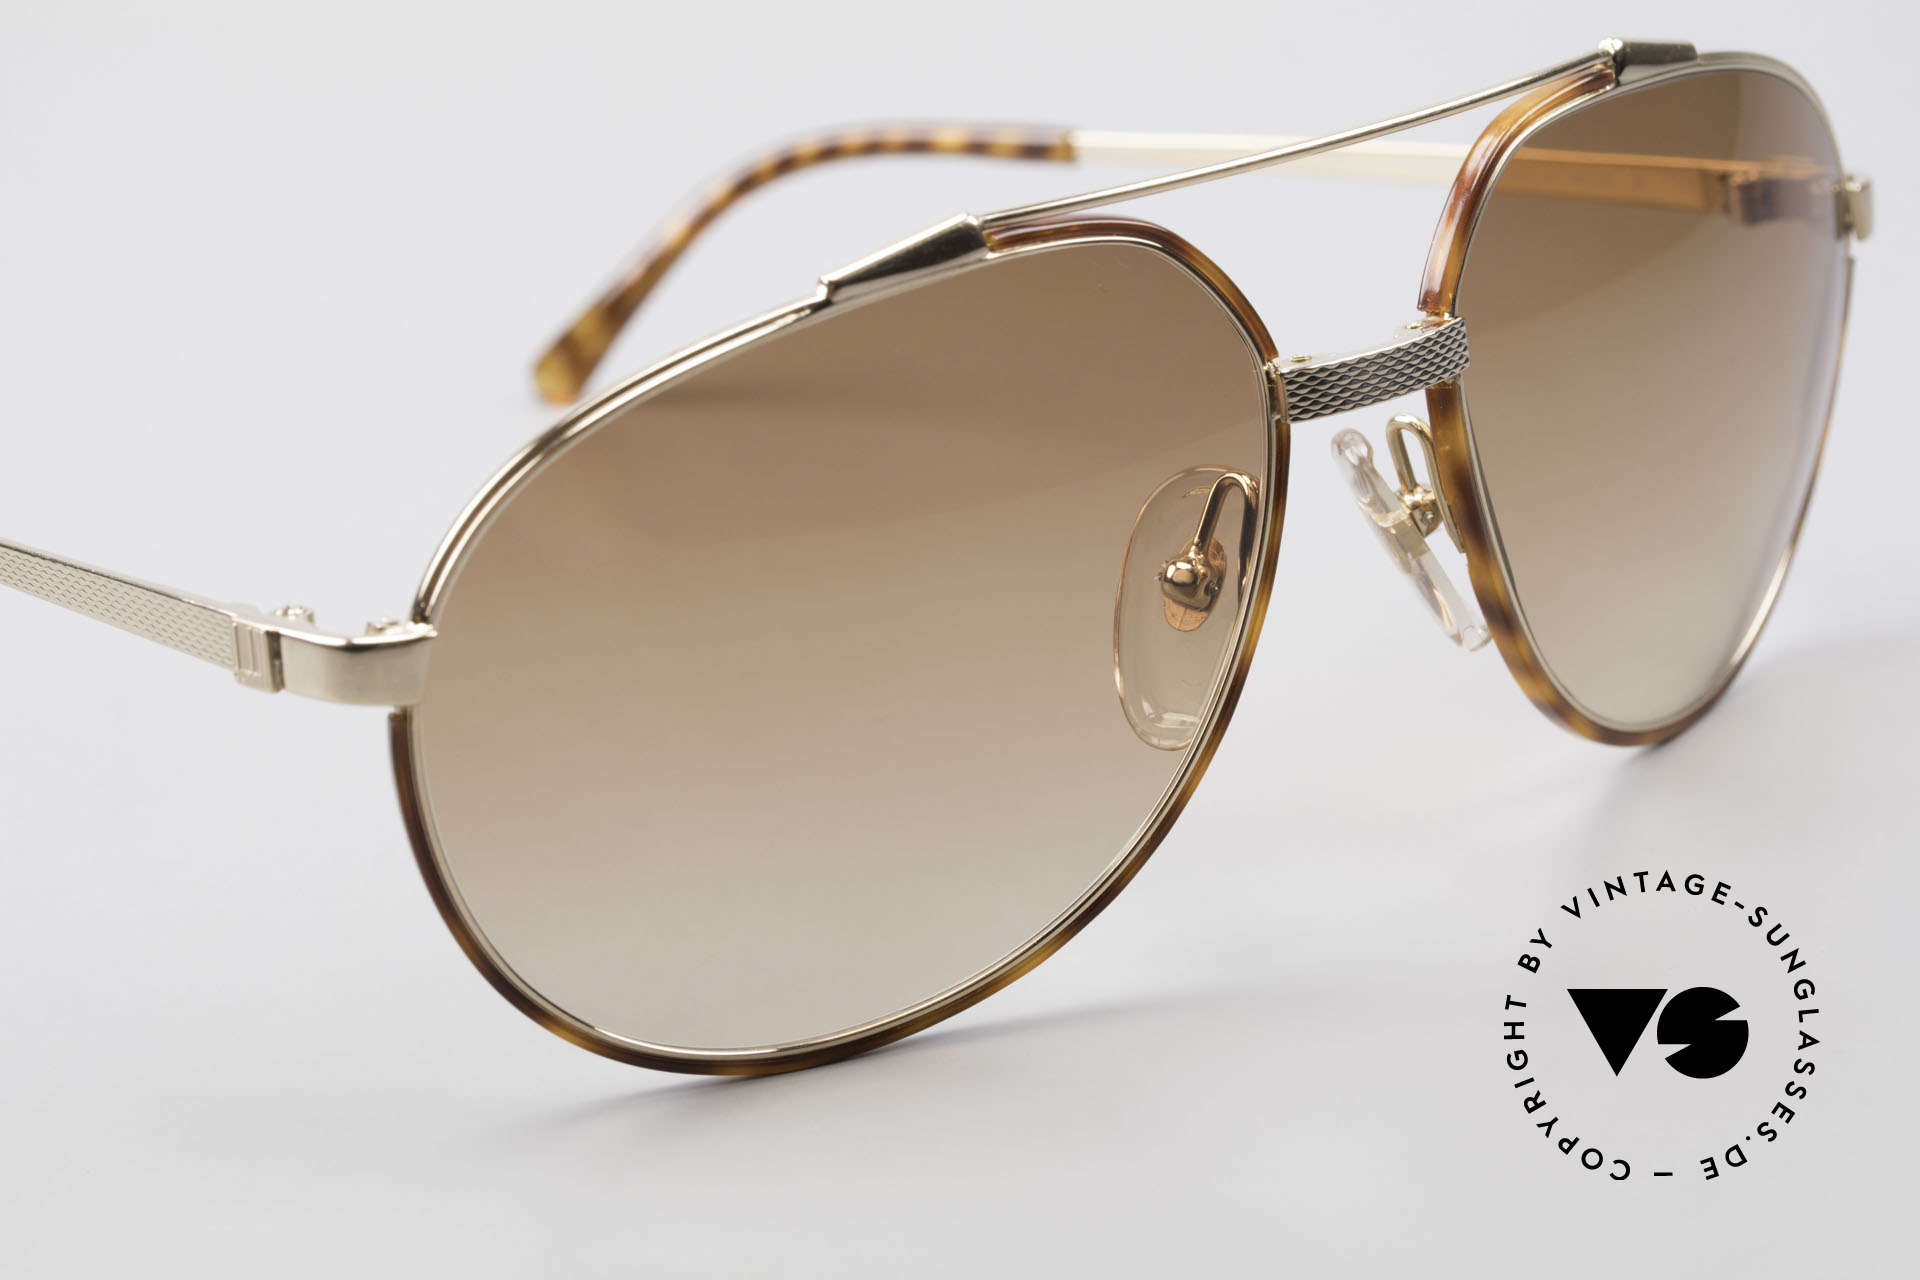 Dunhill 6174 Comfort Fit Luxury Sunglasses, unworn (like all our VINTAGE luxury sunglasses), Made for Men